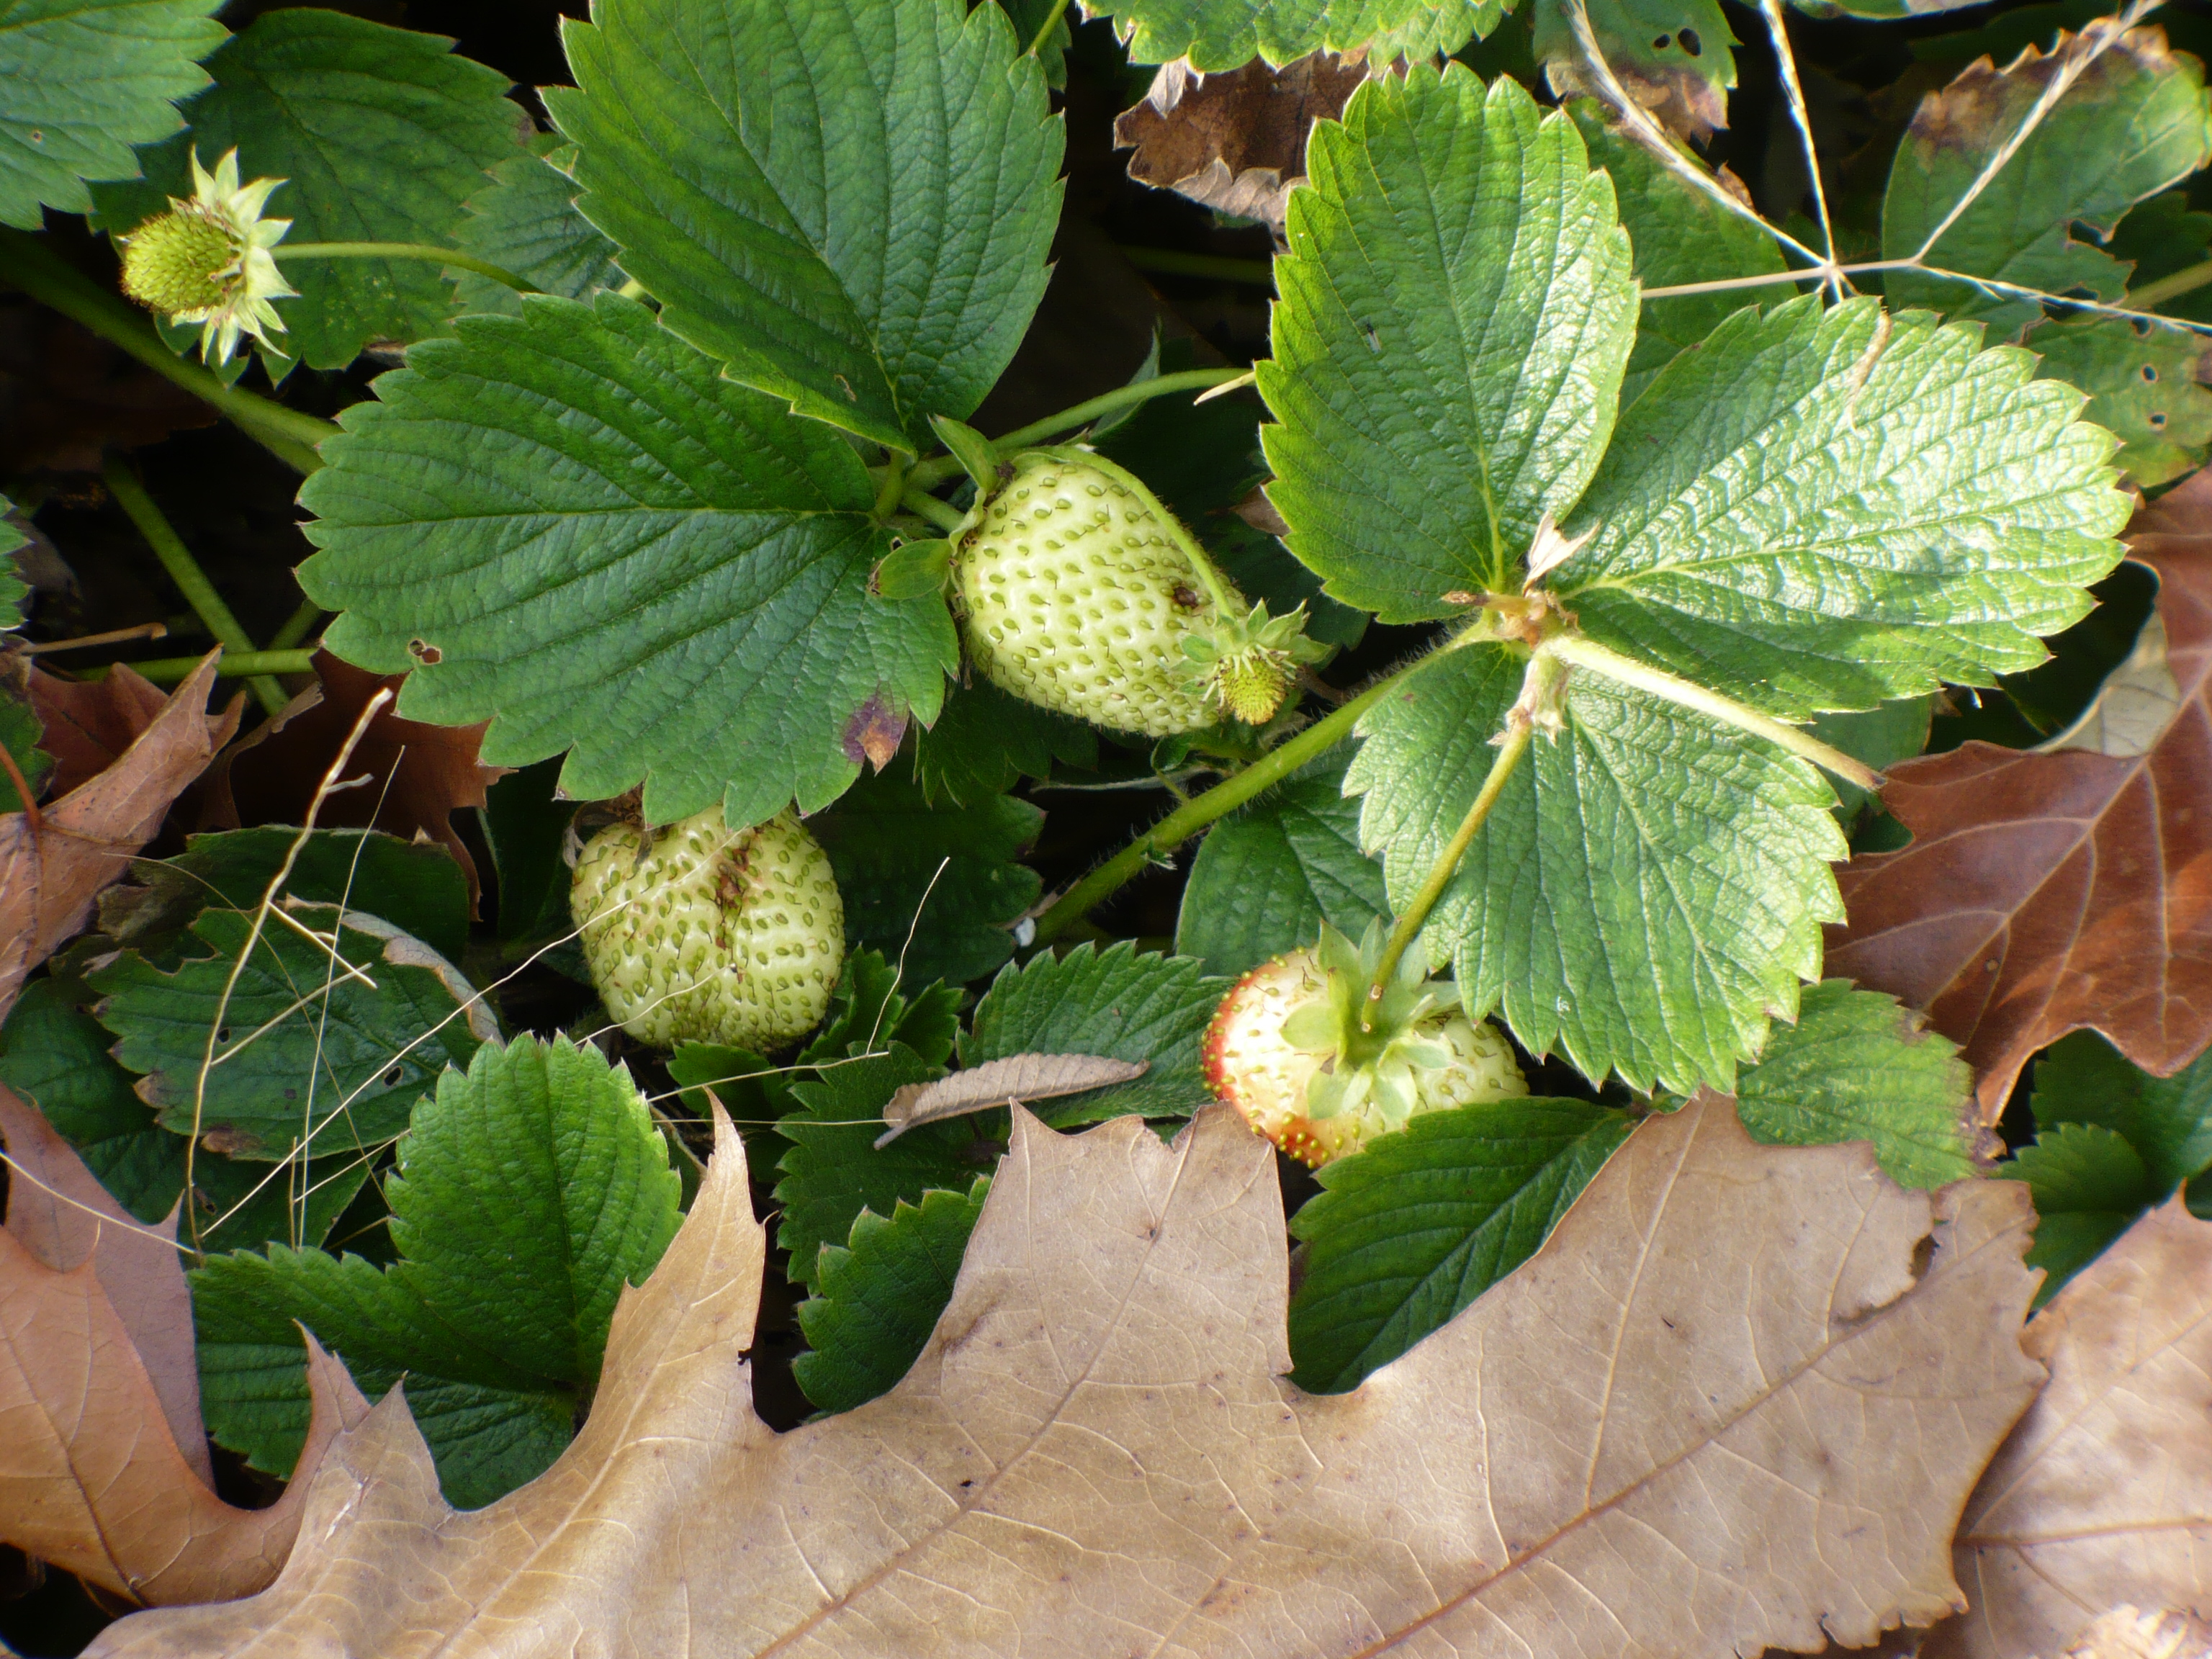 Strawberries with leaf